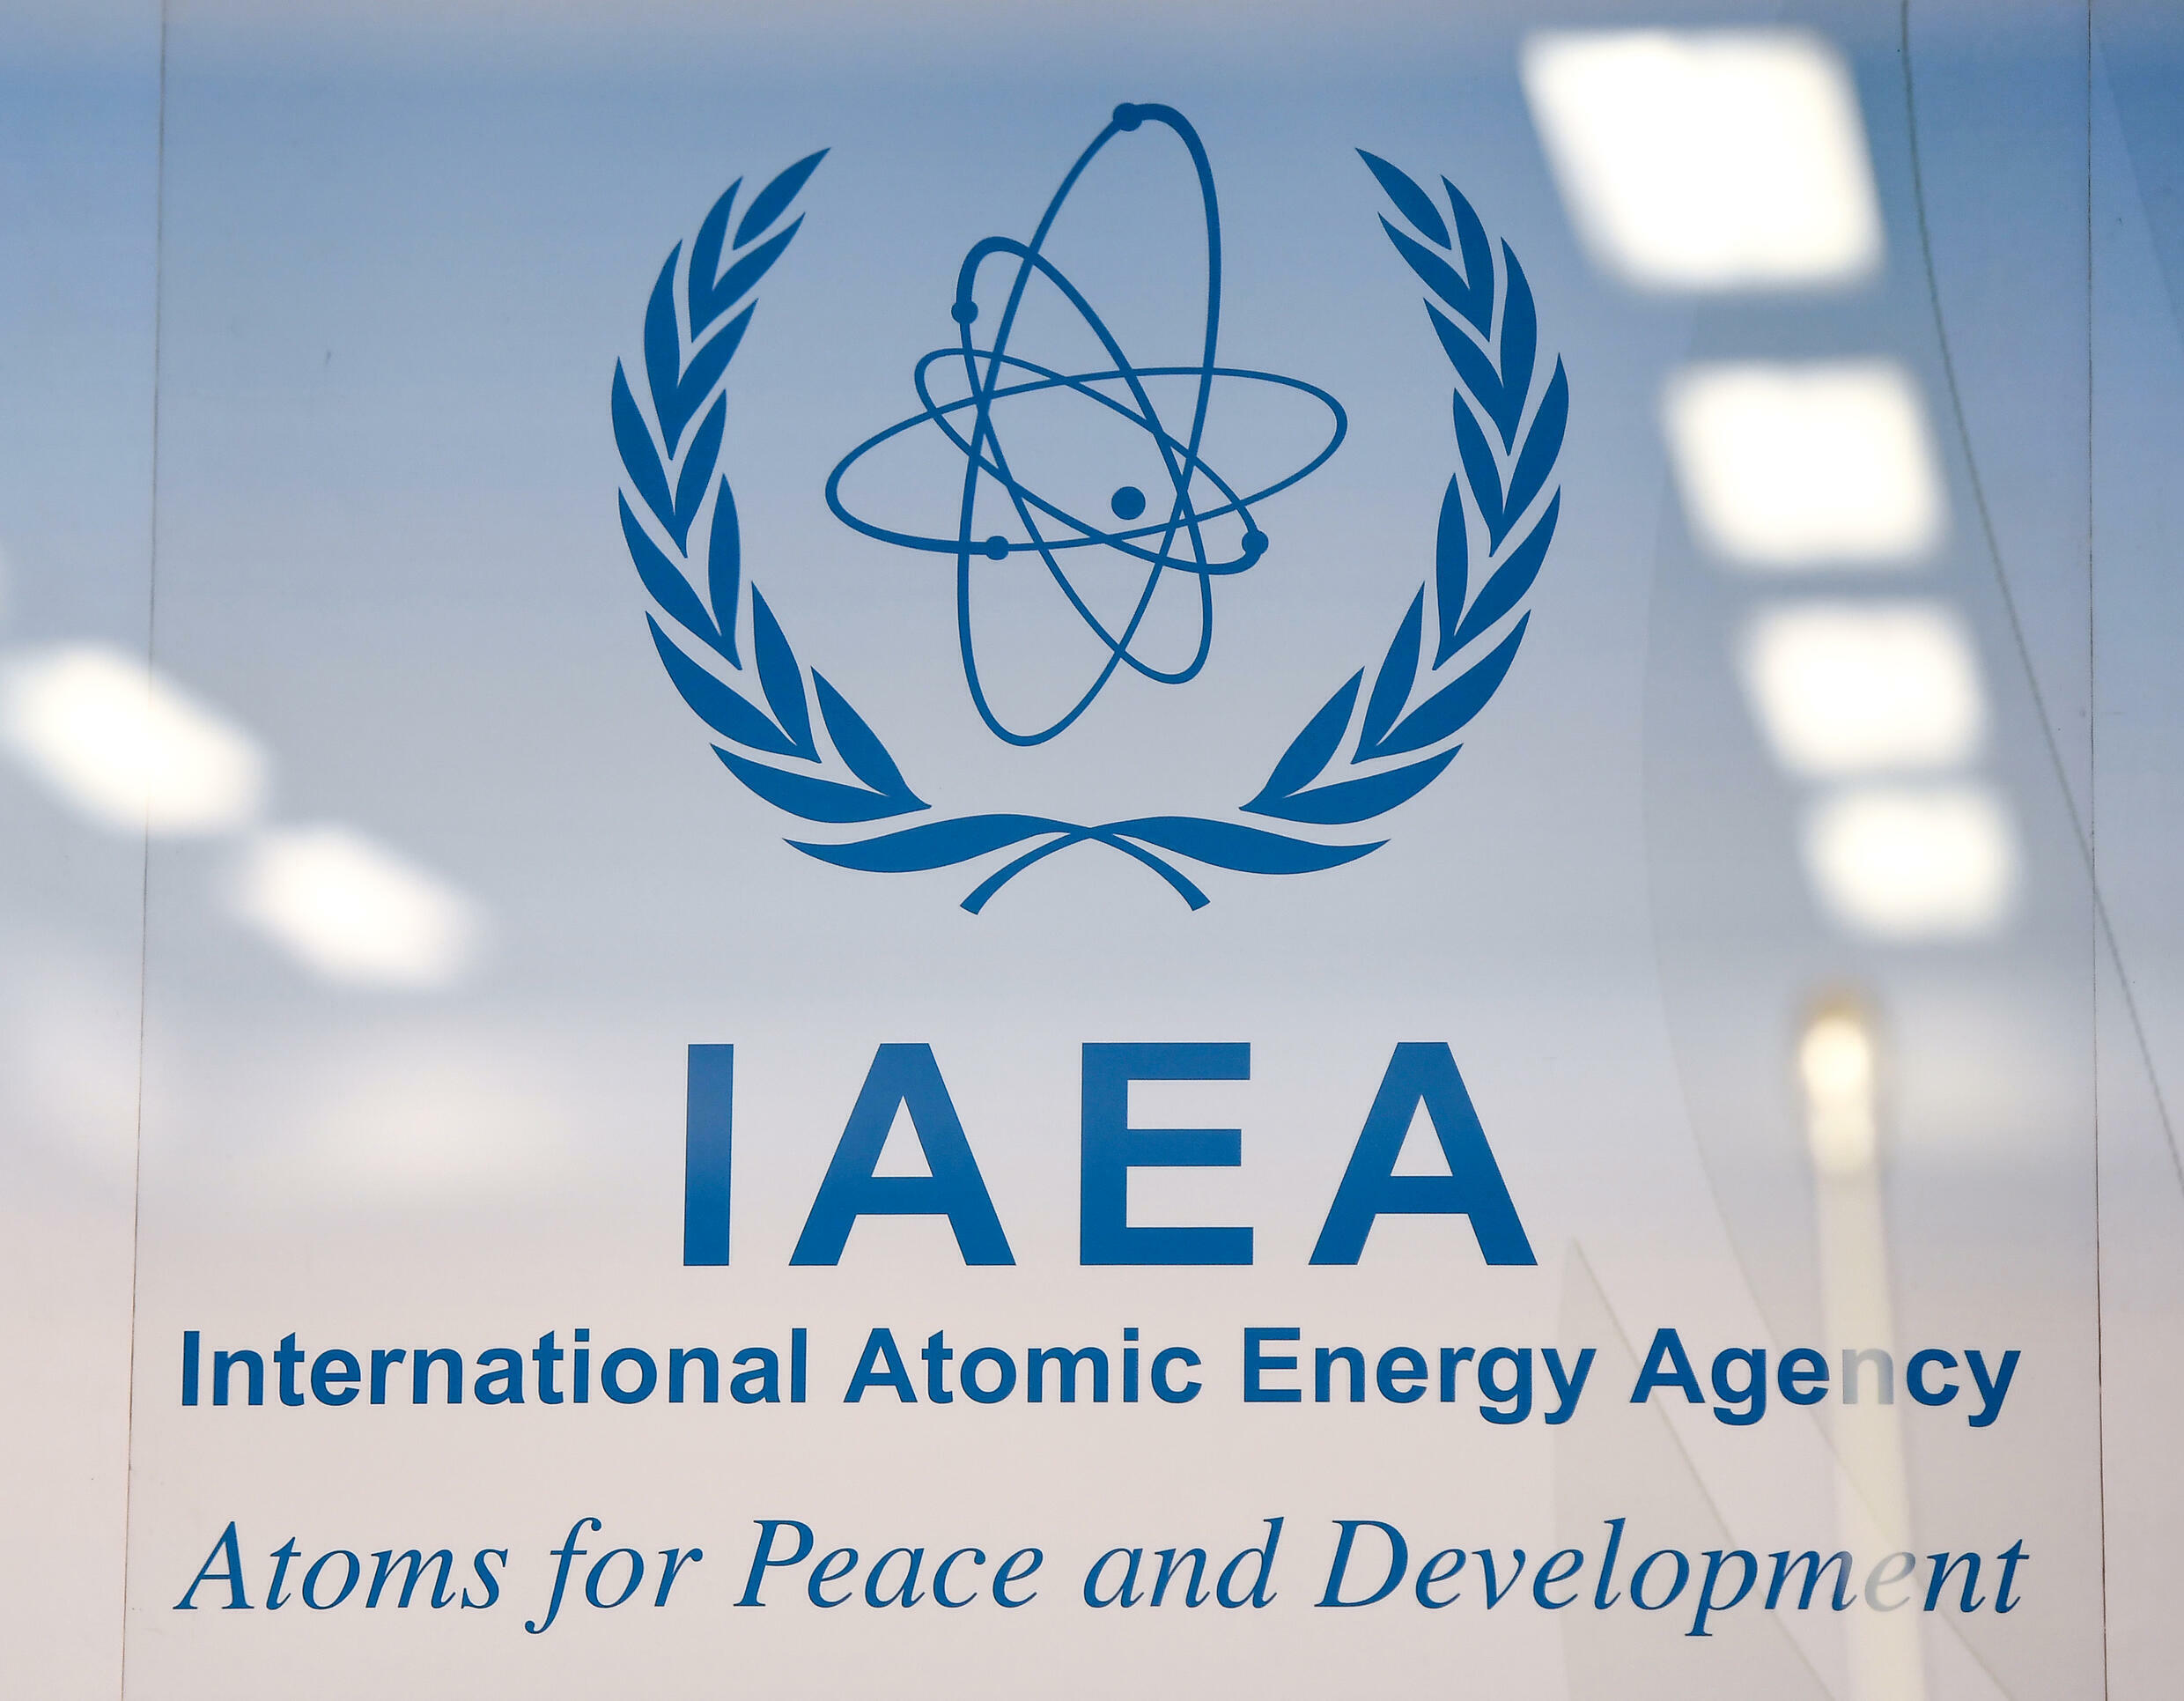 An IAEA report said that Iran had boosted its stocks of uranium enriched above the percentage allowed in the 2015 nuclear deal